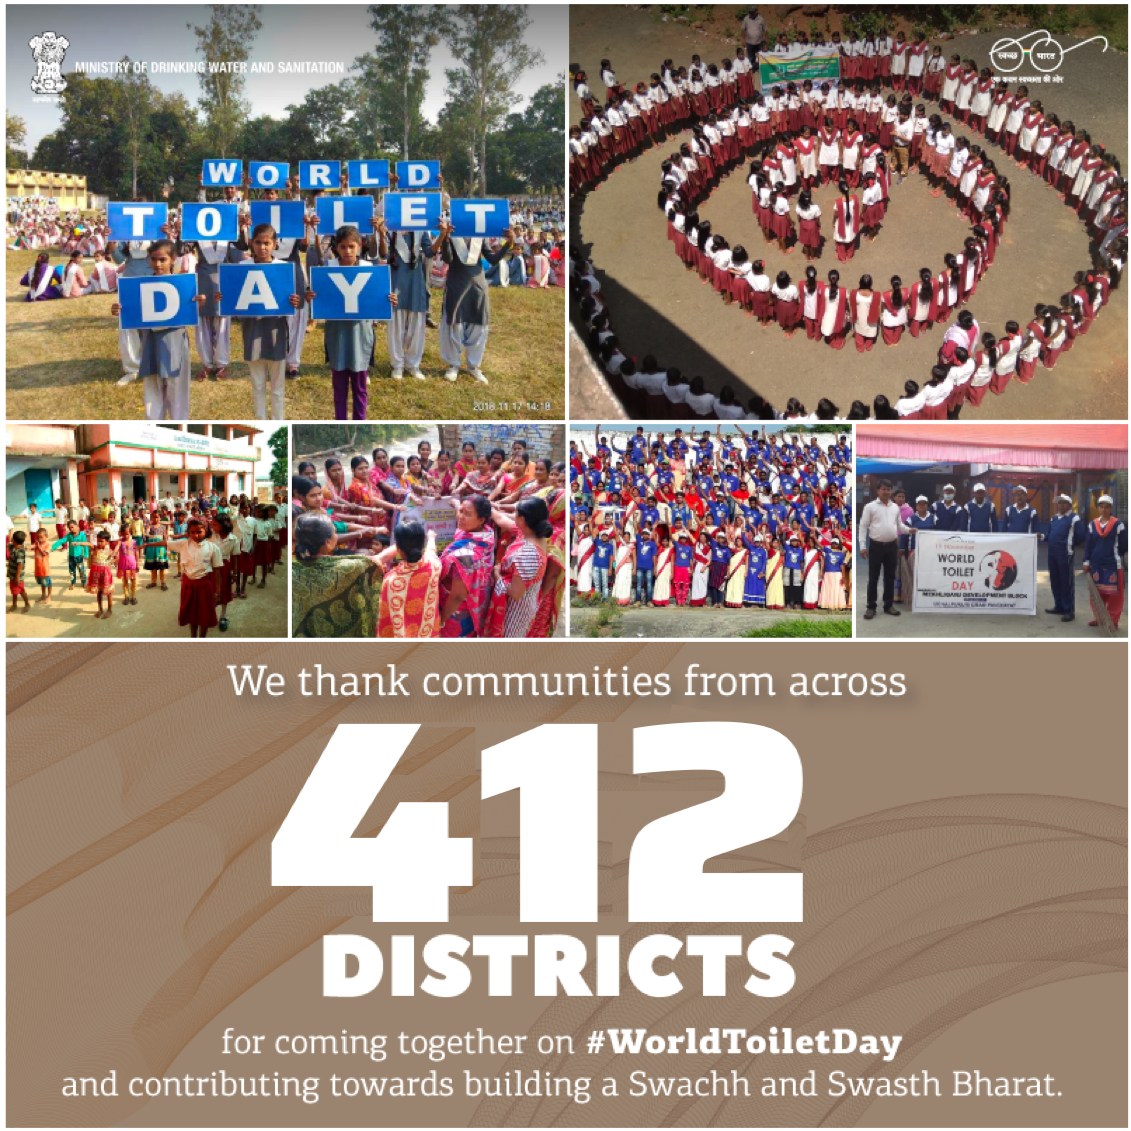 We thank all the communities across the 412 districts that came together and made their contribution towards building a #SwachhBharat on the occasion of #WorldToiletDay. It is this enthusiastic participation from the people that will make the Swachh Bharat Mission a success.